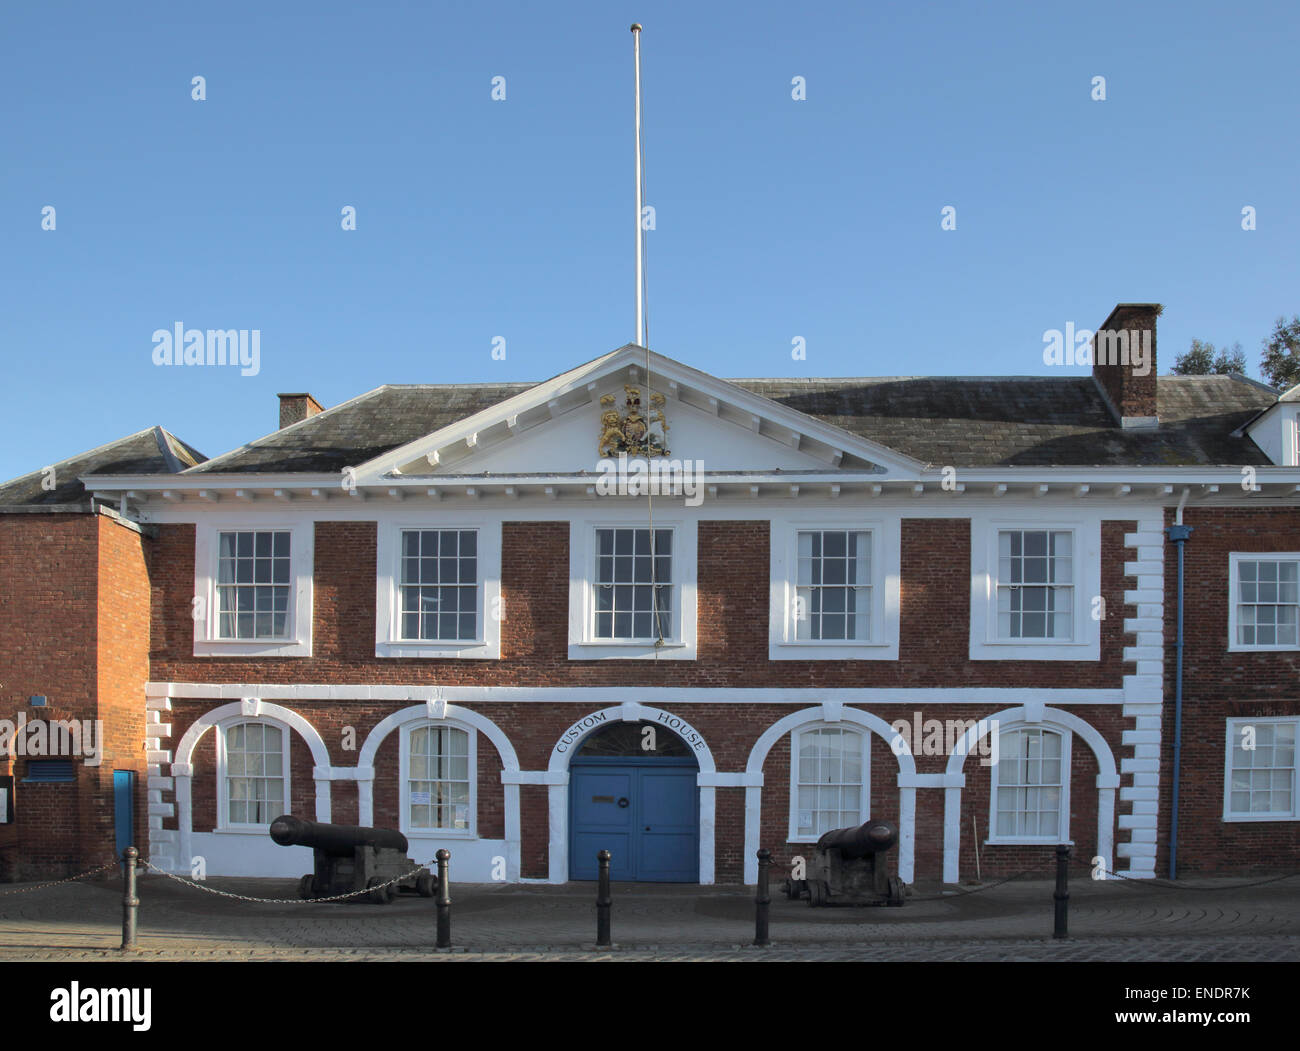 custom house exeter quay on the river exe and the exeter canal - Stock Image